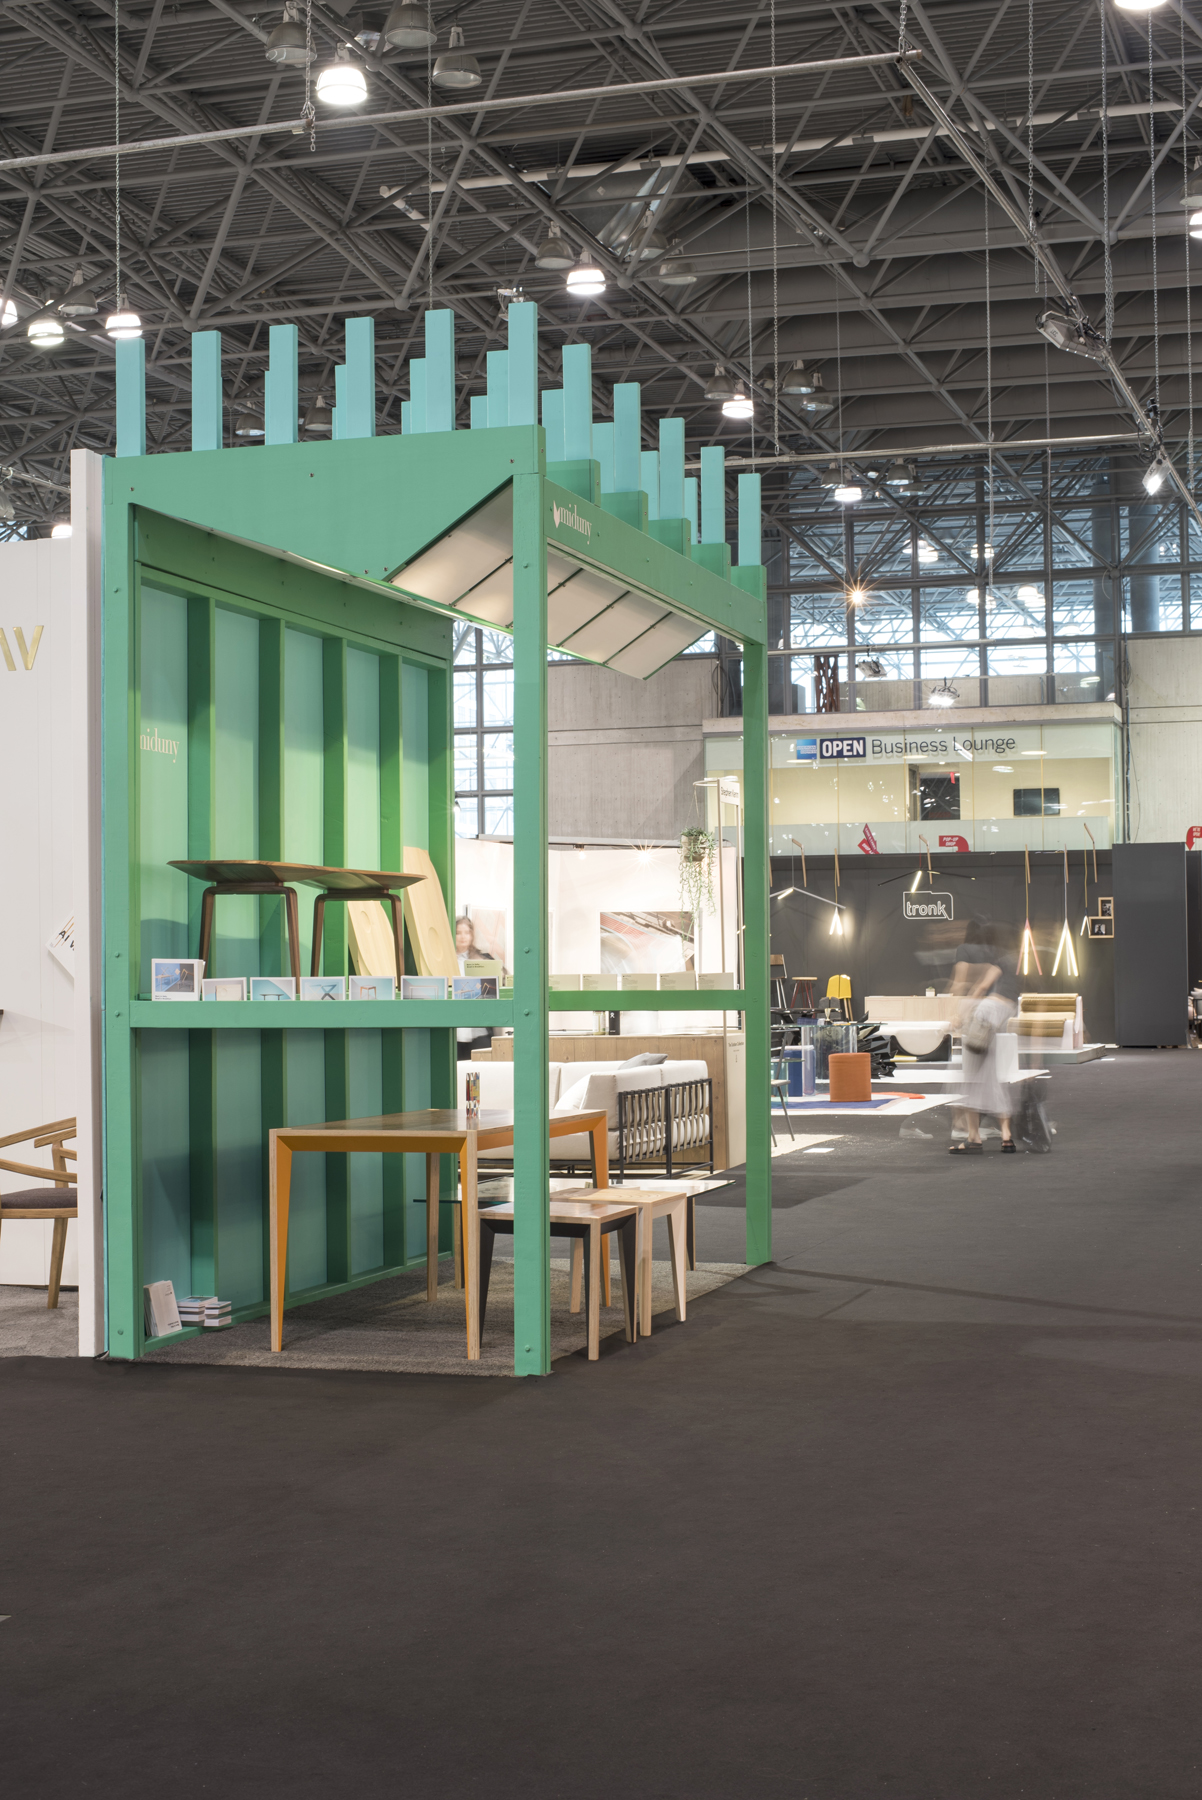 The booth, designed by alepreda architecture, has integrated lighting and slots at the sides to place postcards and pamphlets.